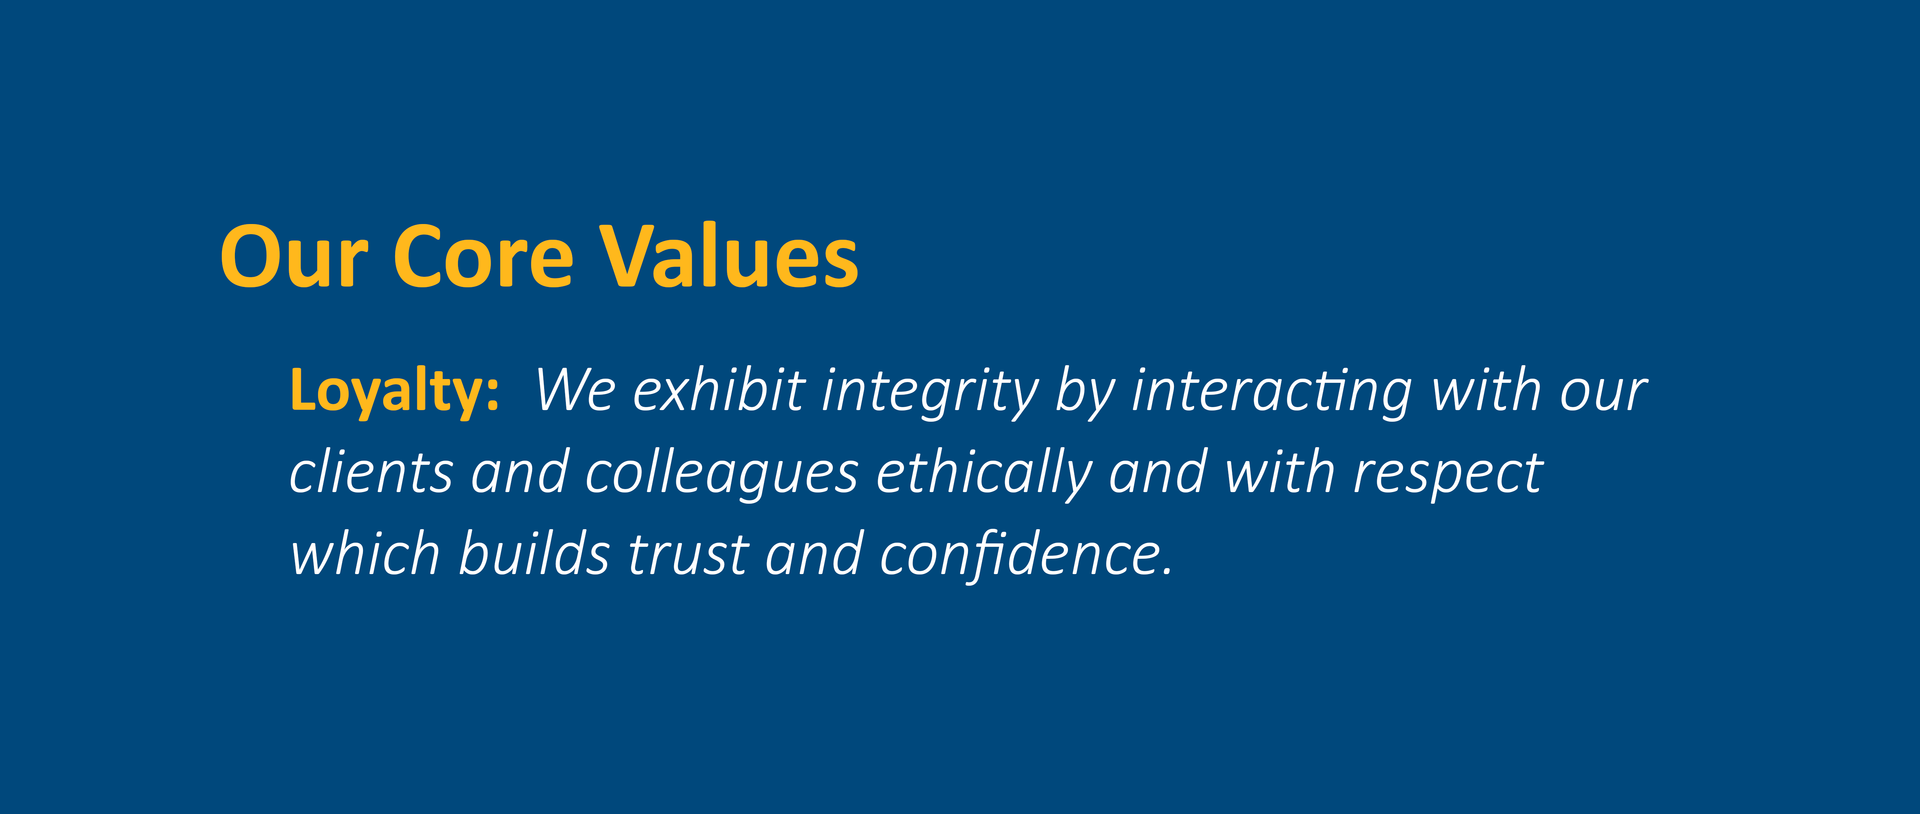 Loyalty:  We exhibit integrity by interacting with our clients and colleagues ethically and with respect which builds trust and confidence.